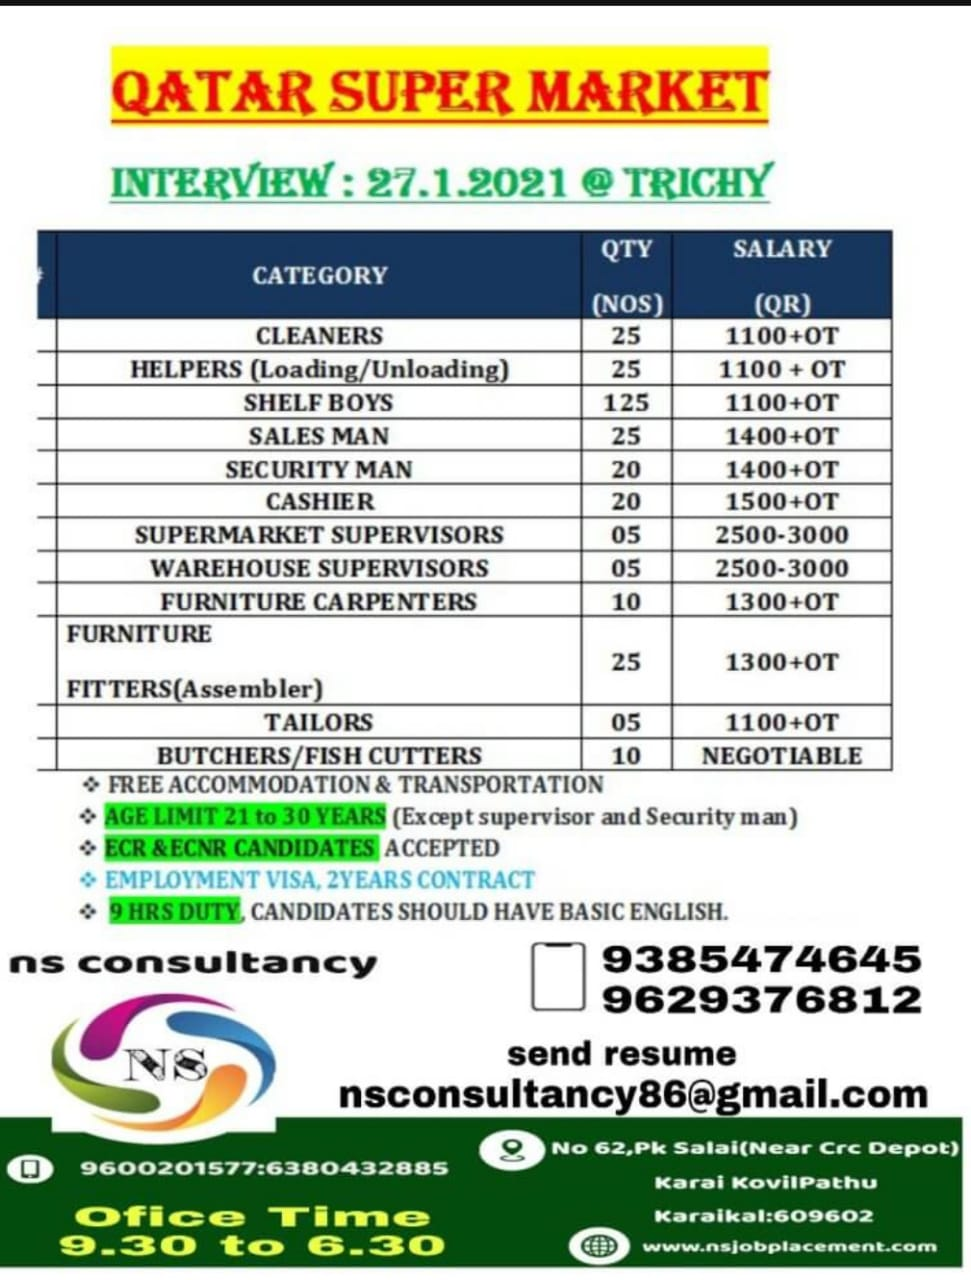 WALK-IN INTERVIEW AT TRICHY FOR QATAR SUPER MARKET